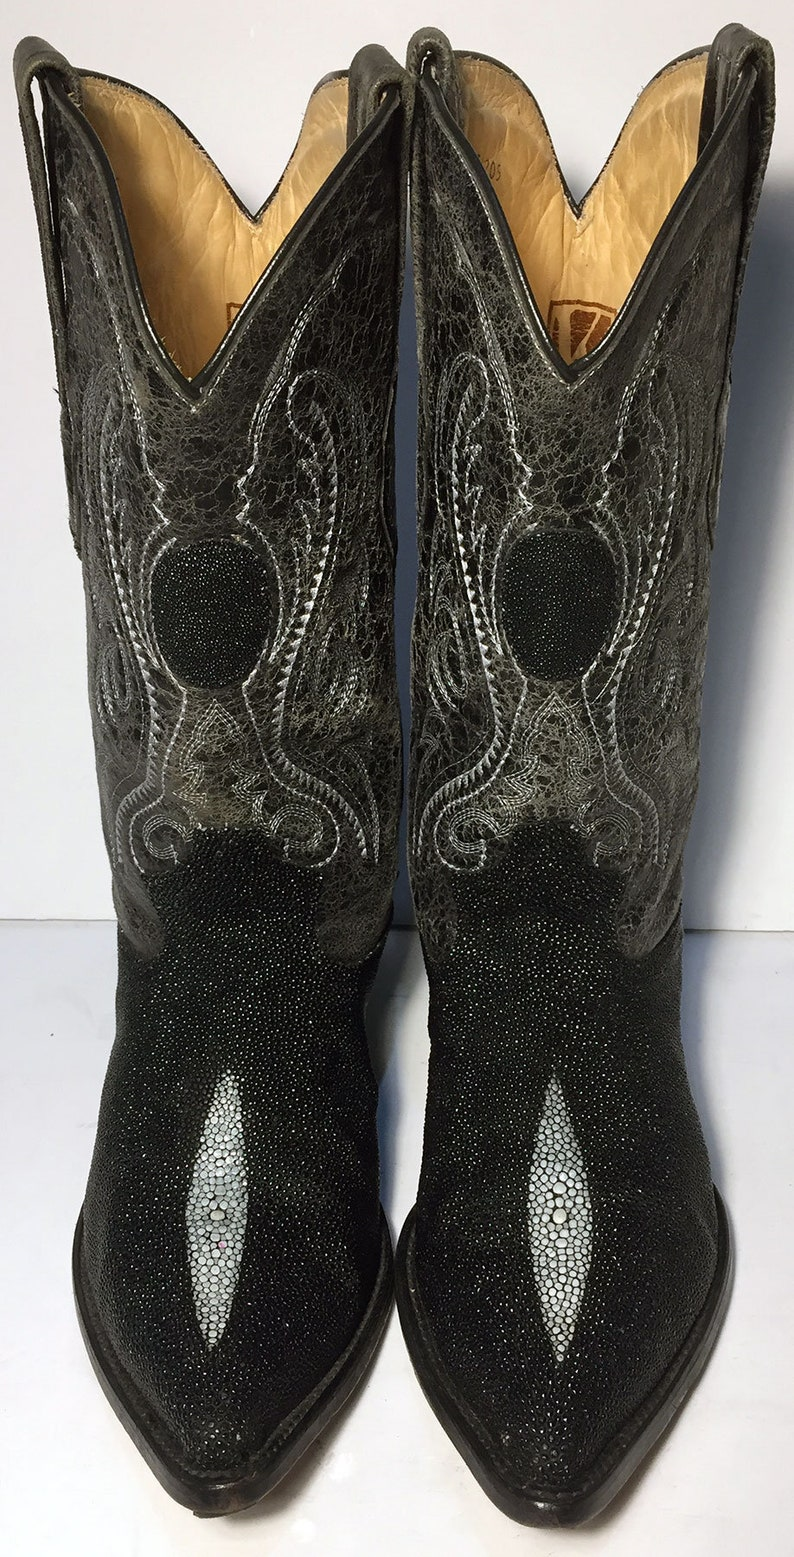 7bb8692ac400f 10 US || 43 Euro || 9.5 UK || Black Stingray Cowboy Western Boots Men ||  Size 10 EE (Wide Width) Exotic Leather Country Vintage Boots